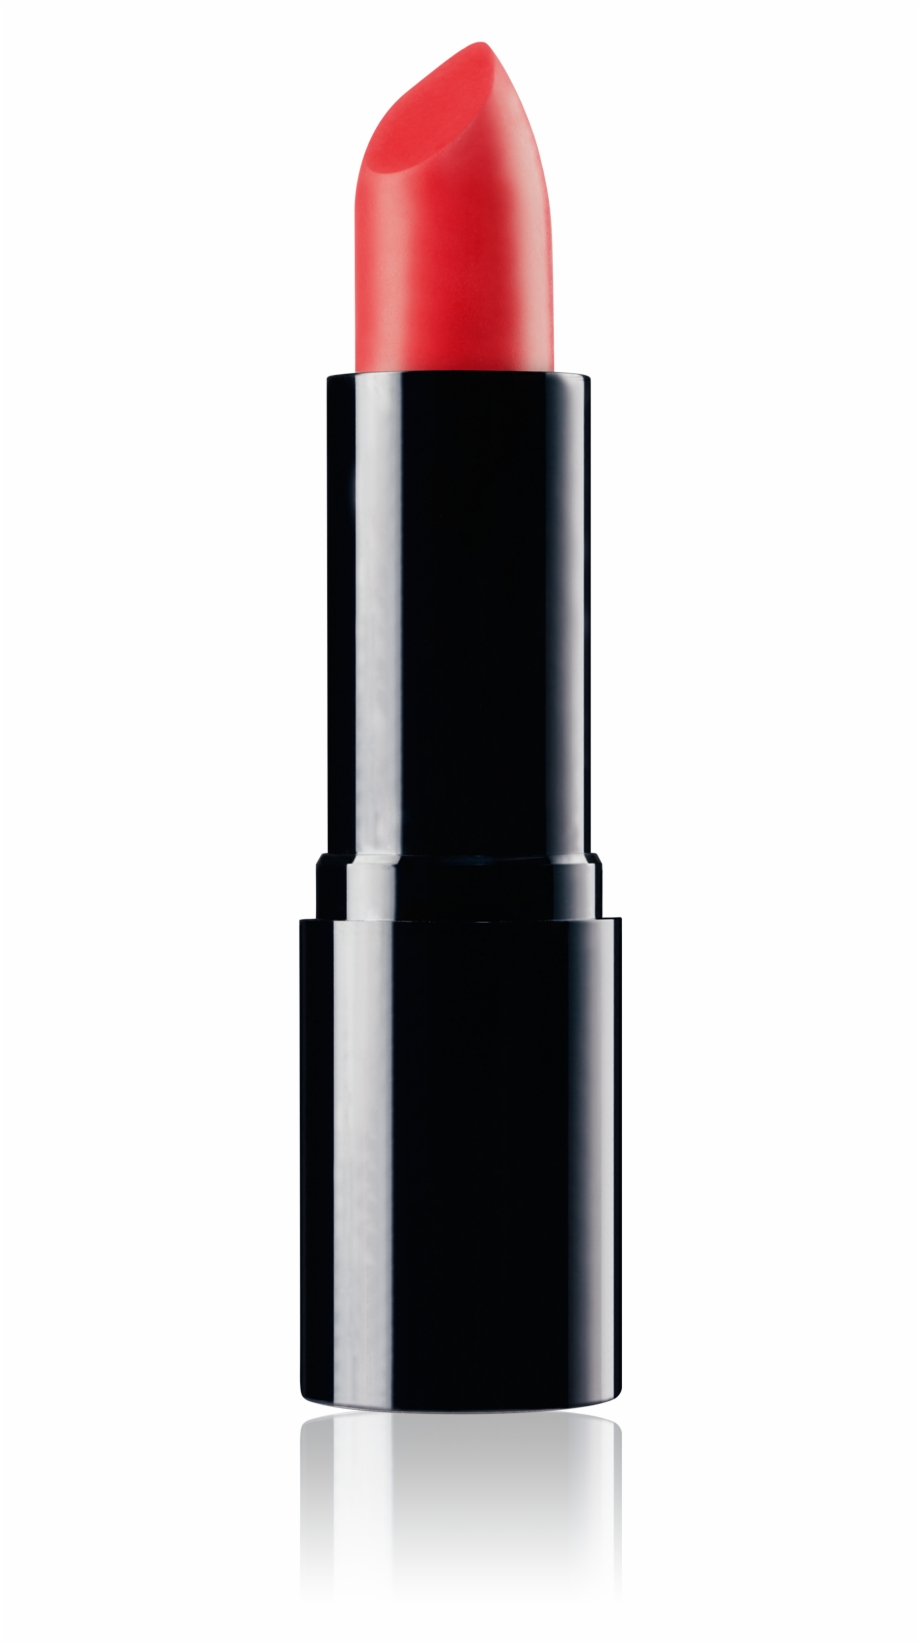 Lipstick Png Pic.